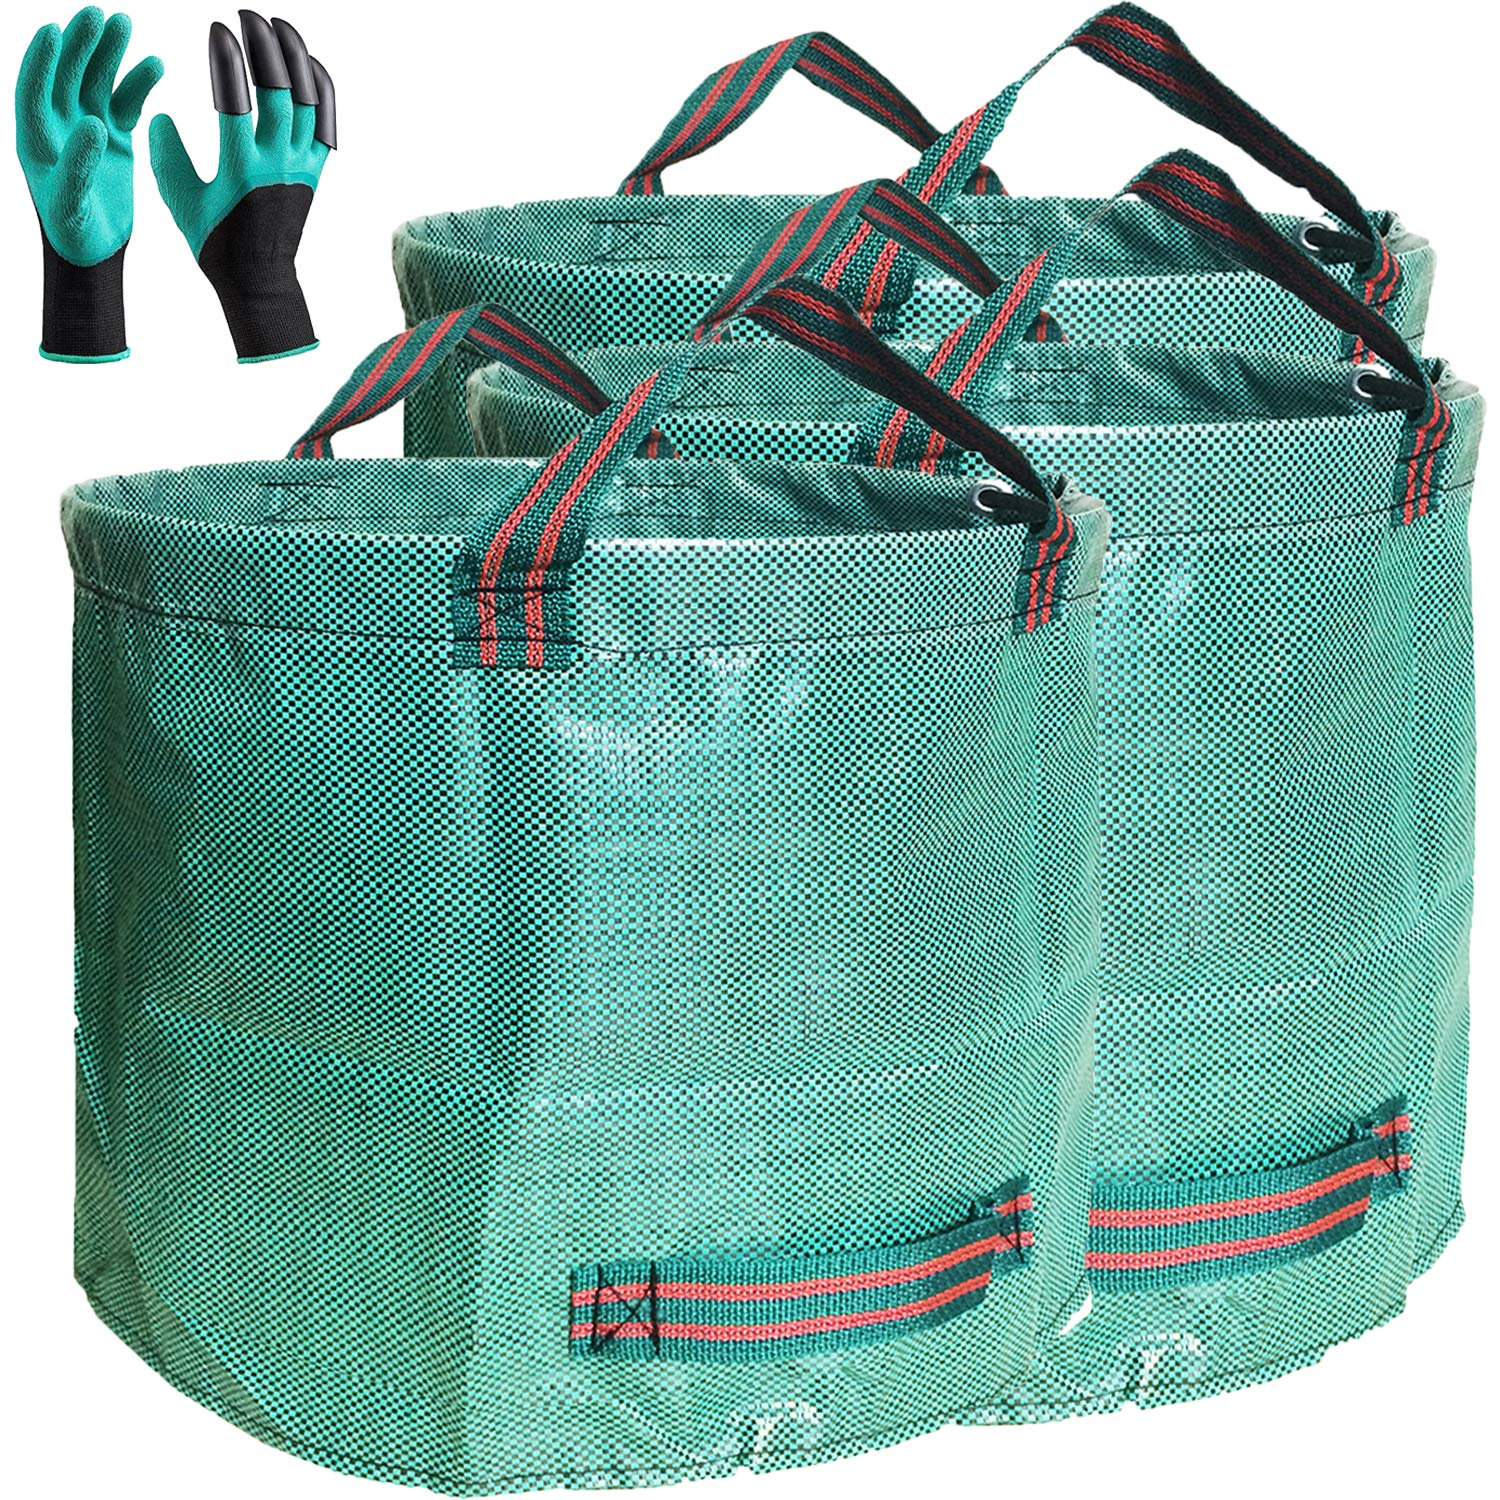 Professional 2-Pack 137 Gallon Lawn Yard Bag Garden Bags with Coated Garden Gloves,XXXXXXL Extra Large Reusable Yard Leaf Bags 4 Handles,Gardening Leaf Container,Trash can bag,Lawn and Yard Waste Bags by i-Touch-Berry